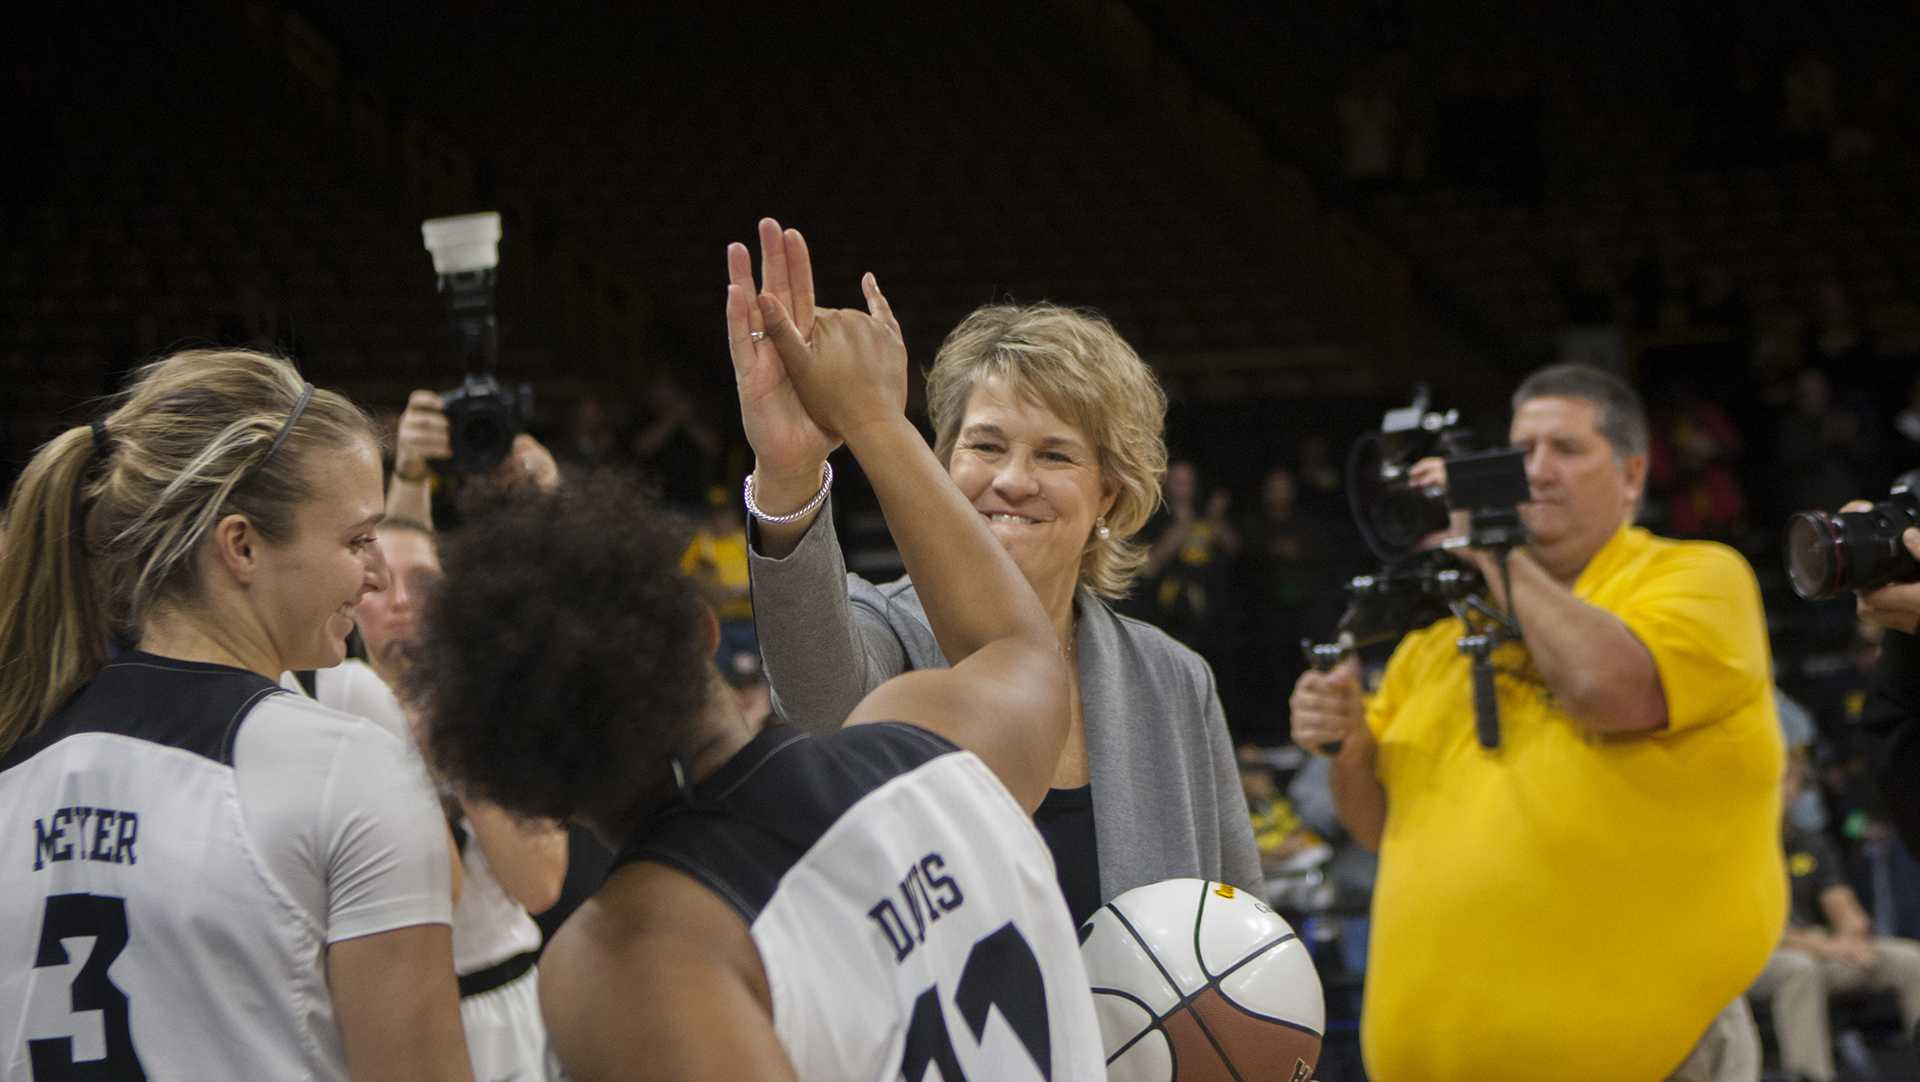 Head coach Lisa Bluder high fives Iowa guard Tania Davis during the Iowa/Quinnipiac basketball game at Carver-Hawkeye Arena on Friday, Nov. 10, 2017. The Hawkeyes defeated the Bobcats, 83-67, for head coach Lisa Bluder's 700 career win. (Lily Smith/The Daily Iowan)